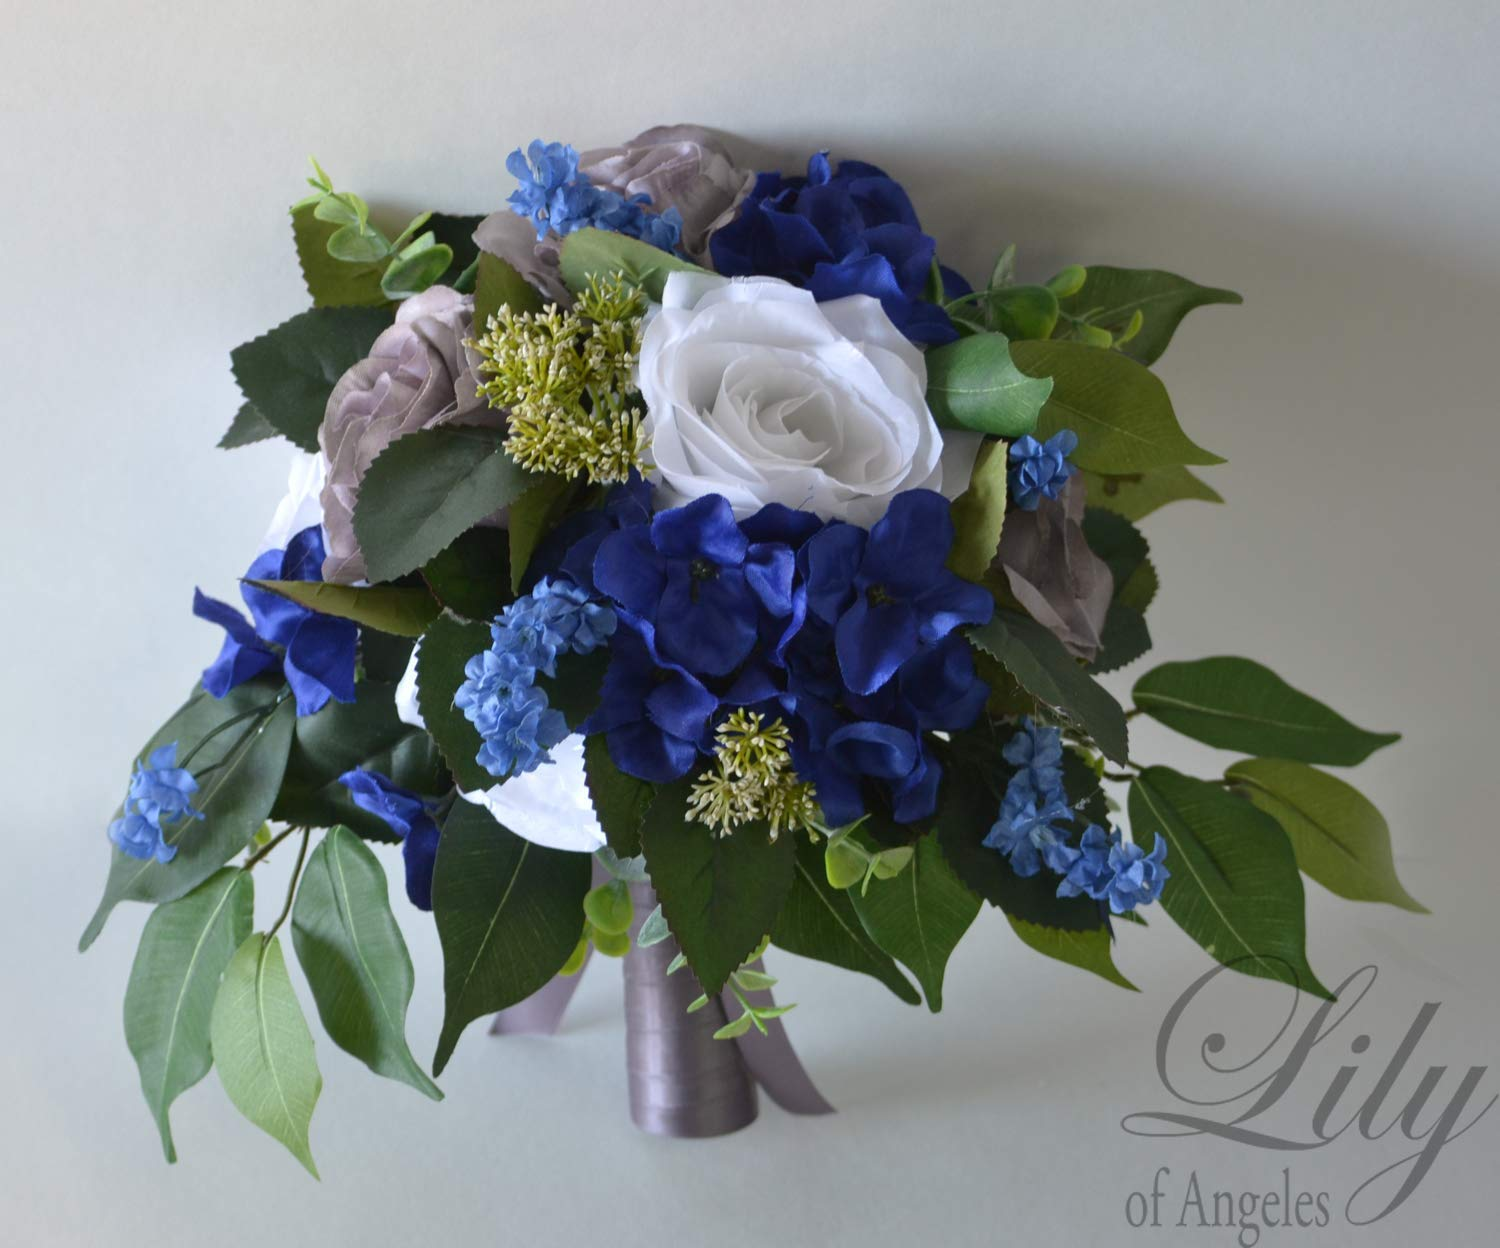 Amazon Com Wedding Bouquet Bridal Bouquet Bridesmaid Bouquet Silk Flower Bouquet Wedding Flower Royal Blue Grey White Blue Green Charcoal Lily Of Angeles Handmade